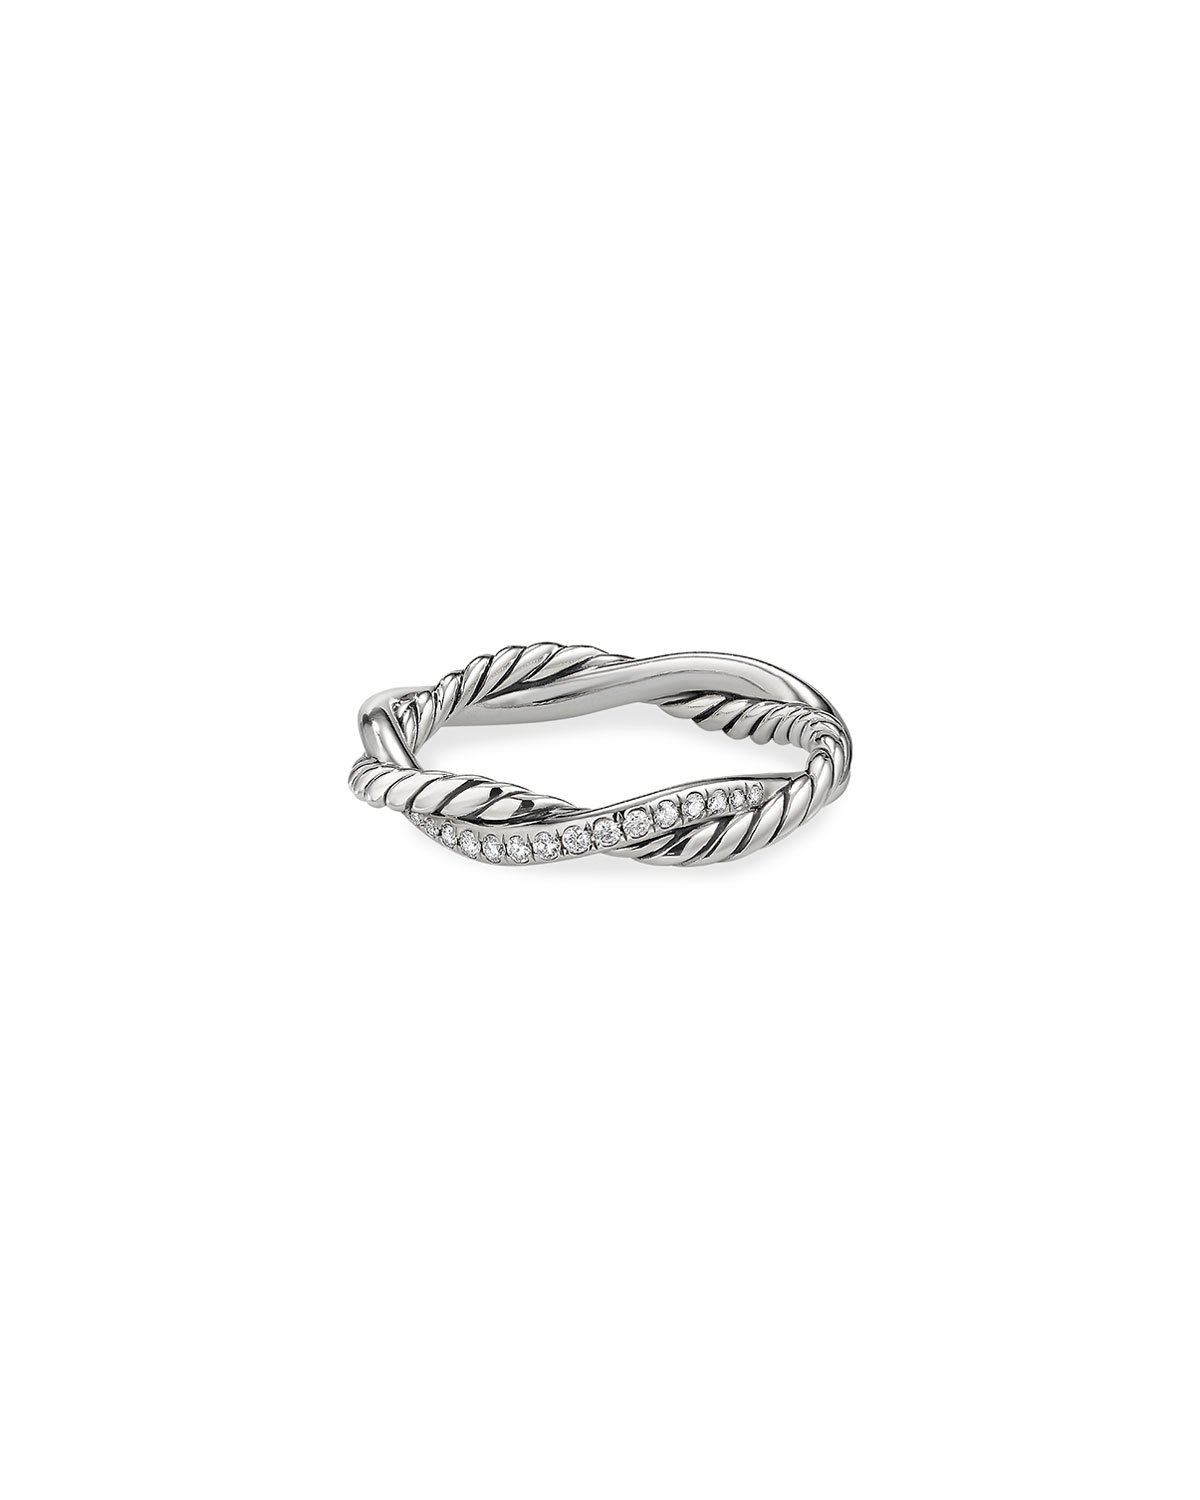 David Yurman PETITE INFINITY TWISTED RING WITH PAVE DIAMONDS